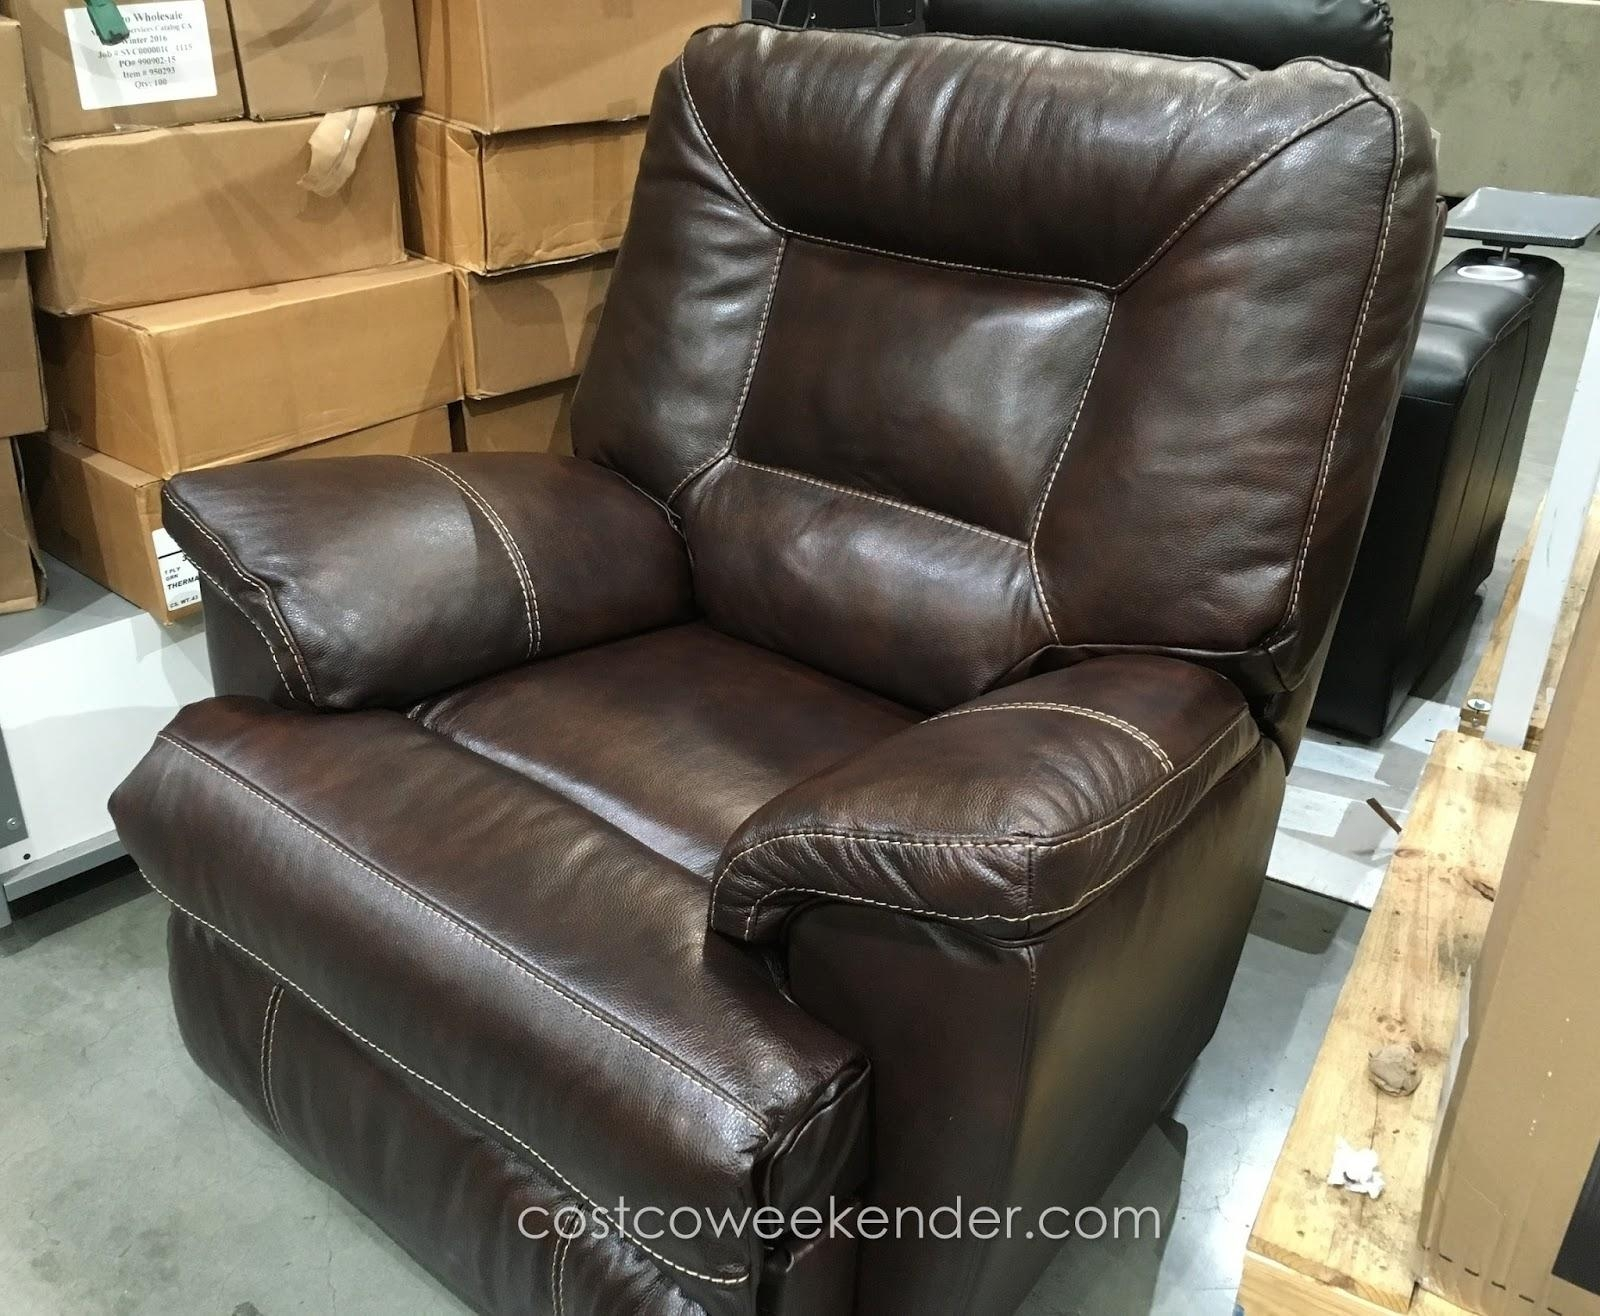 Furniture & Sofa: Enjoy Your Holiday With Costco Home Theater Throughout Berkline Sofas (Image 6 of 20)